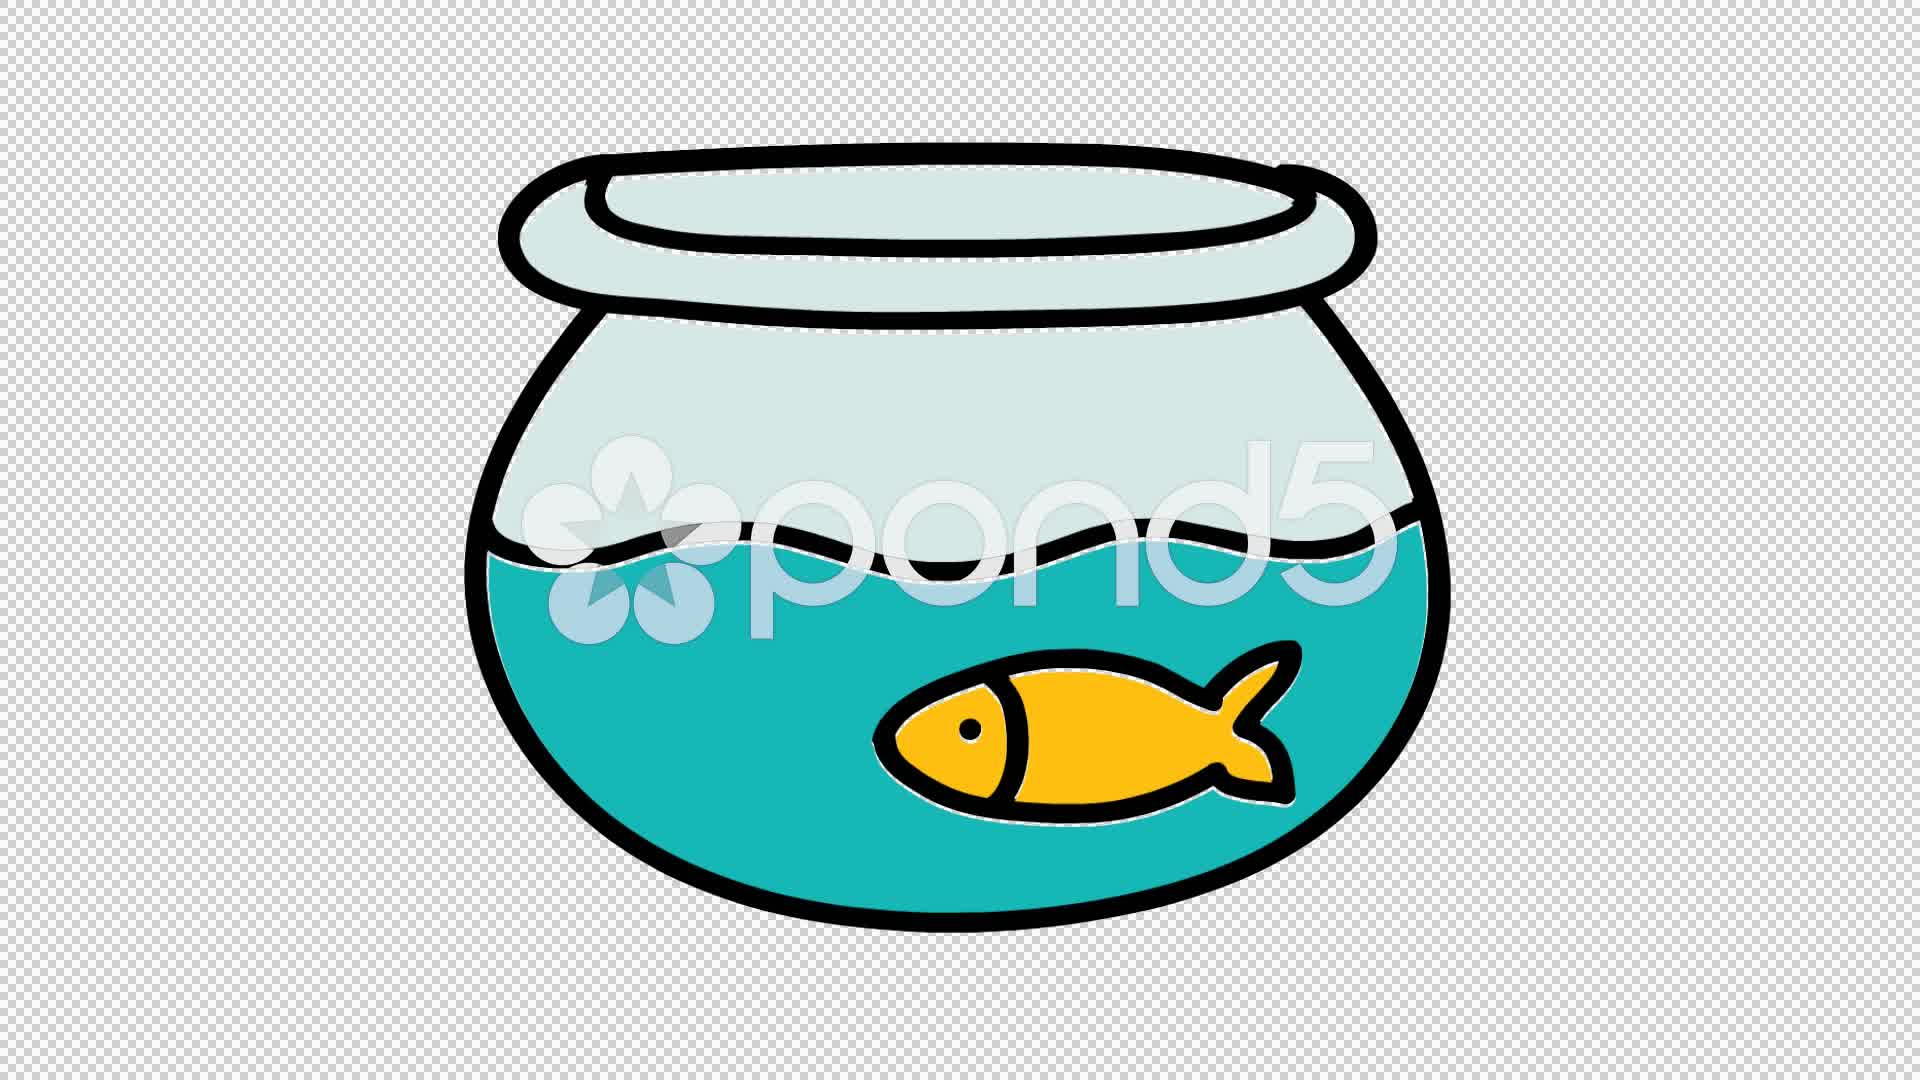 1920x1080 Fish Bowl Hand Drawn Icon Animation With Transparent Background